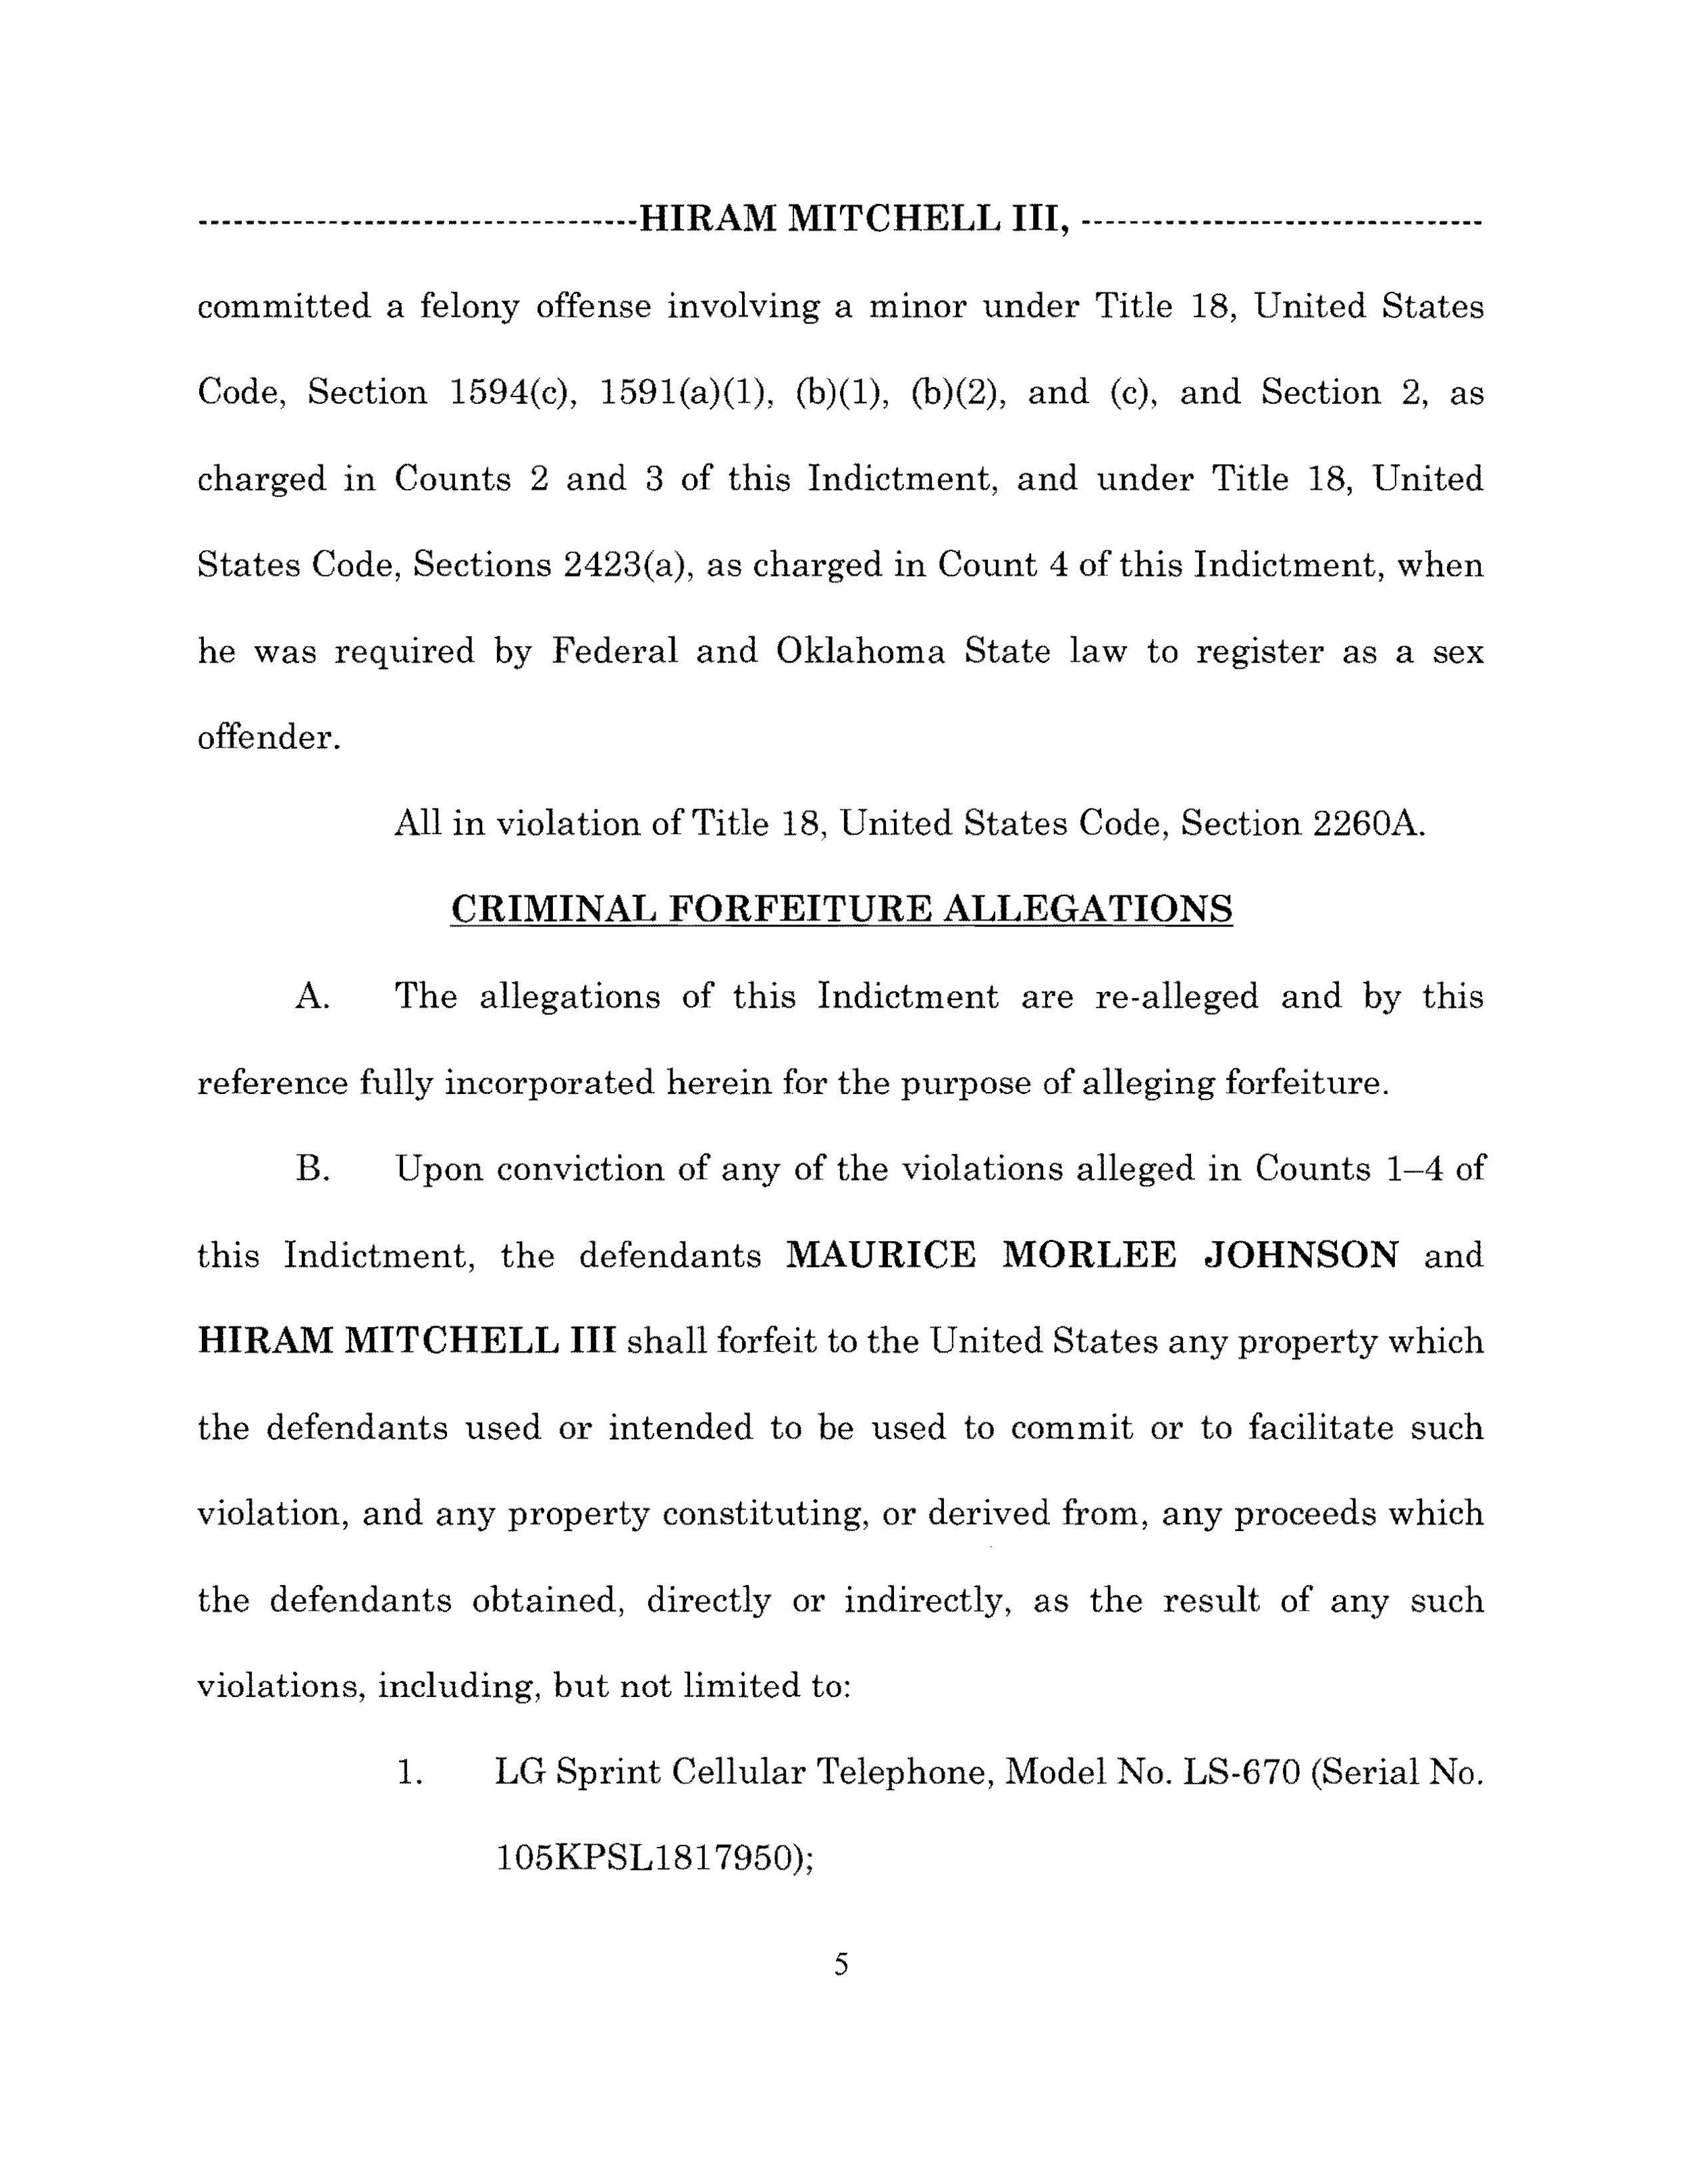 Maurice Johnson Indictment_Page_05_Image_0001.jpg